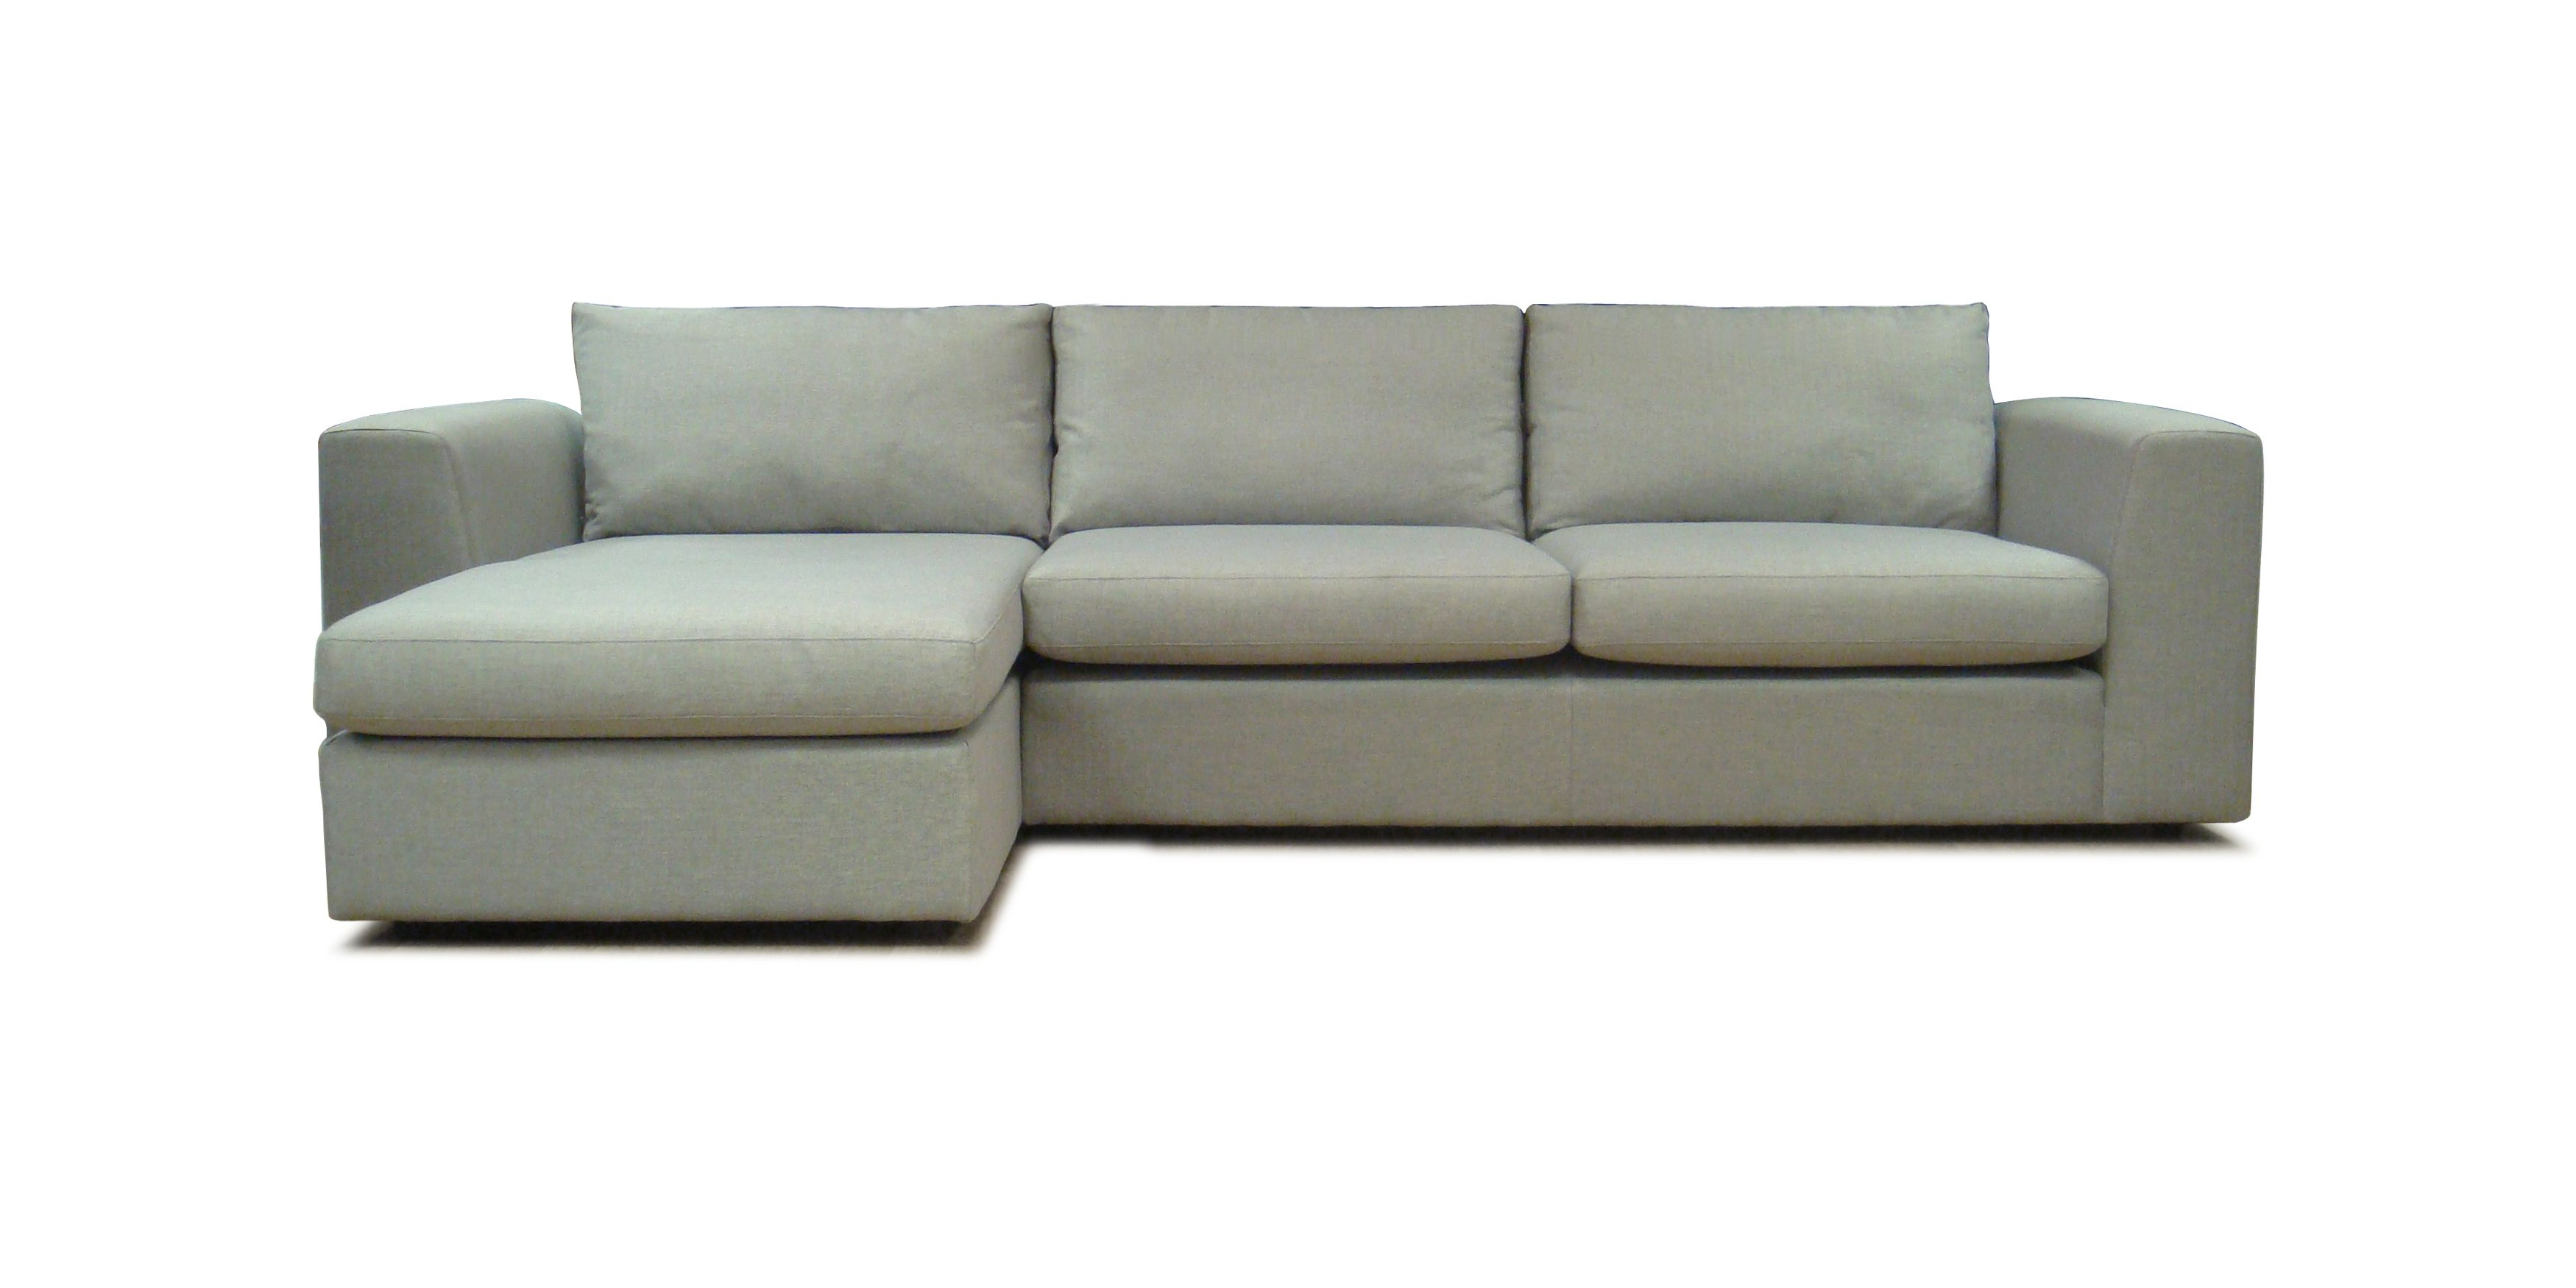 Chaise end sofa bed sofa beds for Chaise end sofa bed